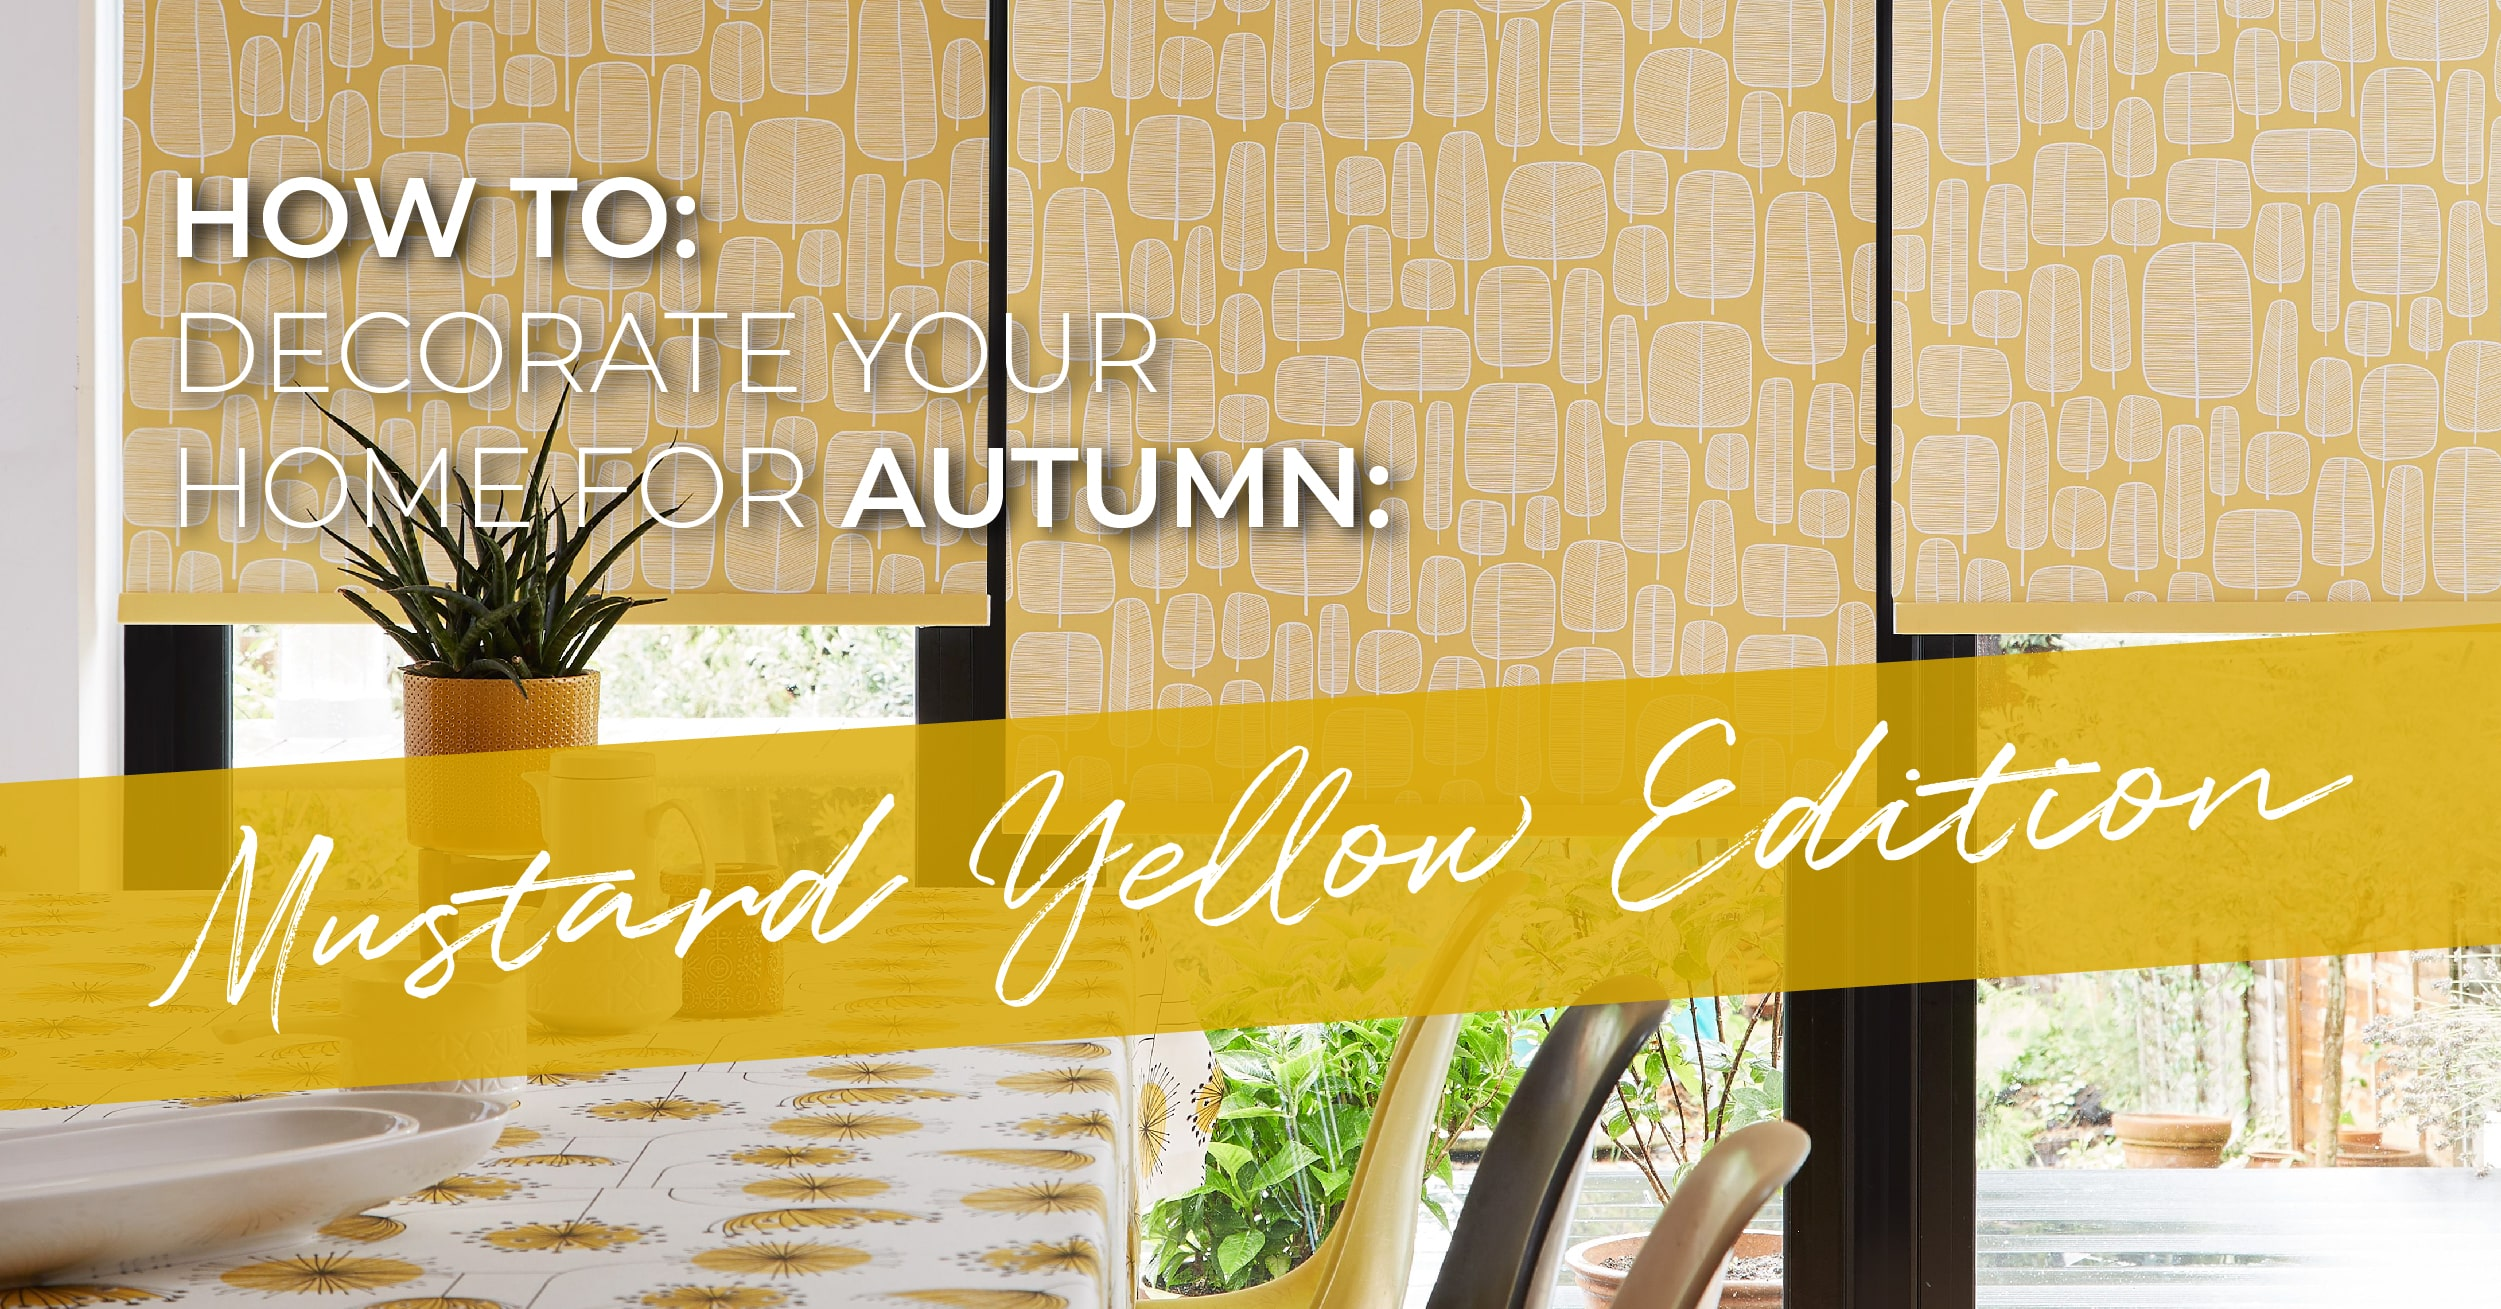 how-to-decorate-your-home-for-autumn-with-mustard-yellow